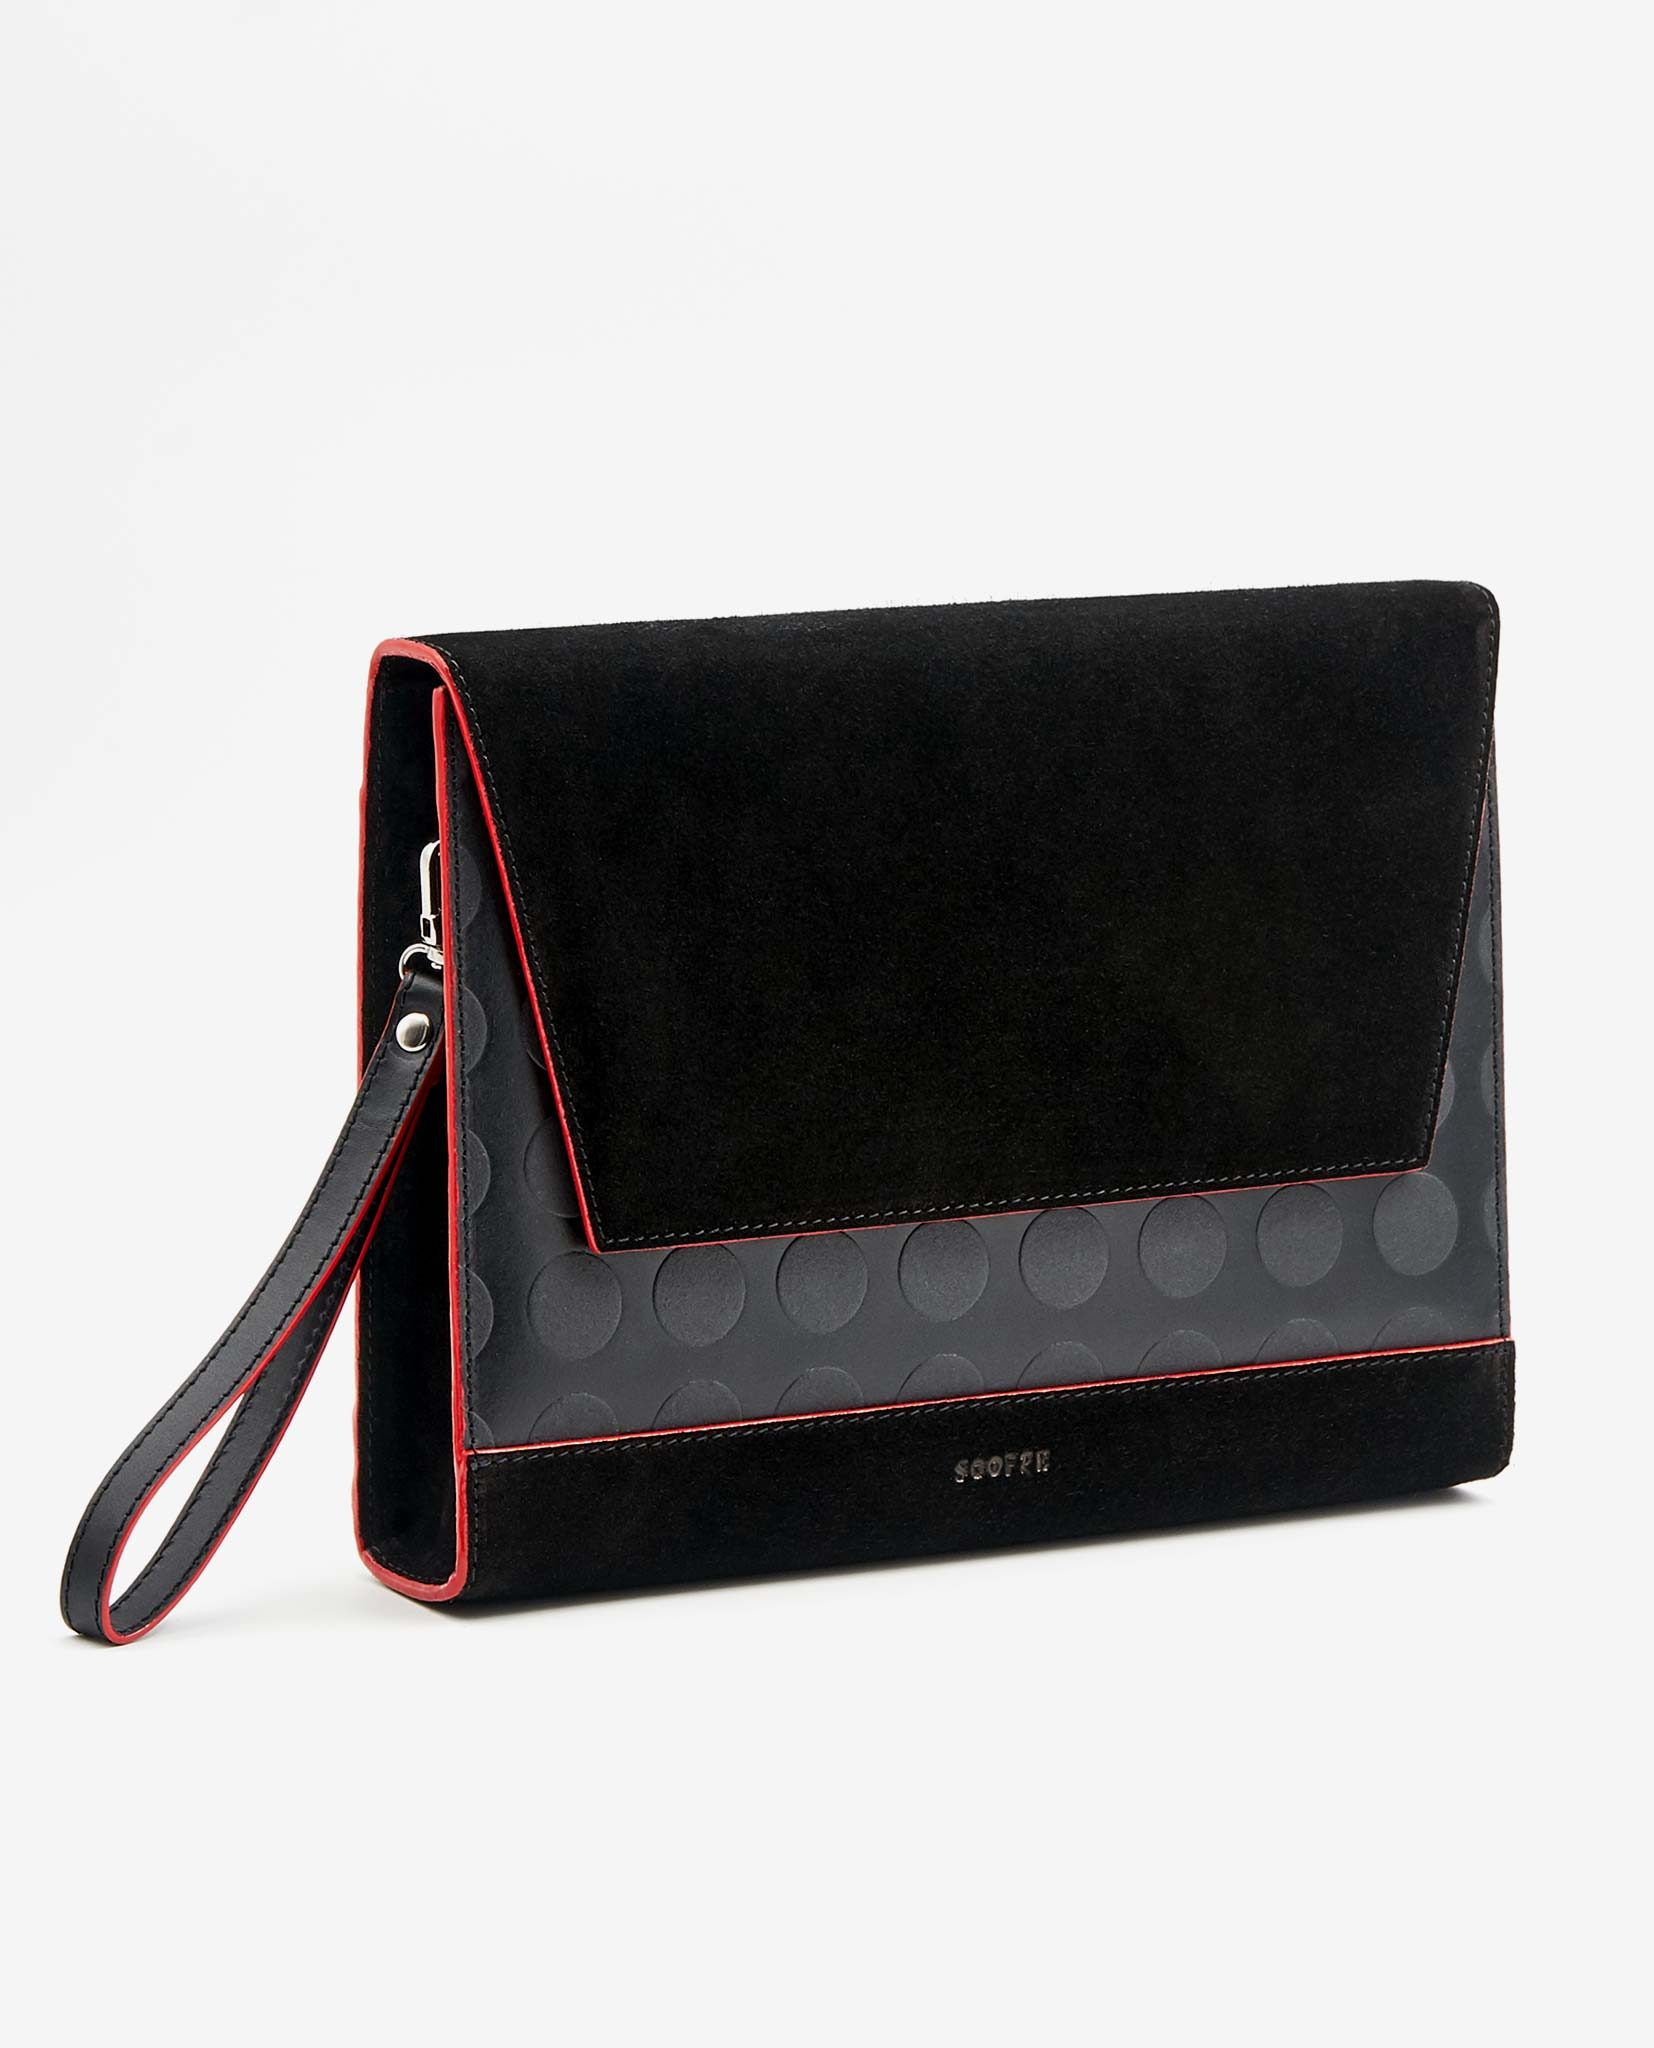 SOOFRE Berlin unique Clutch dotted black red